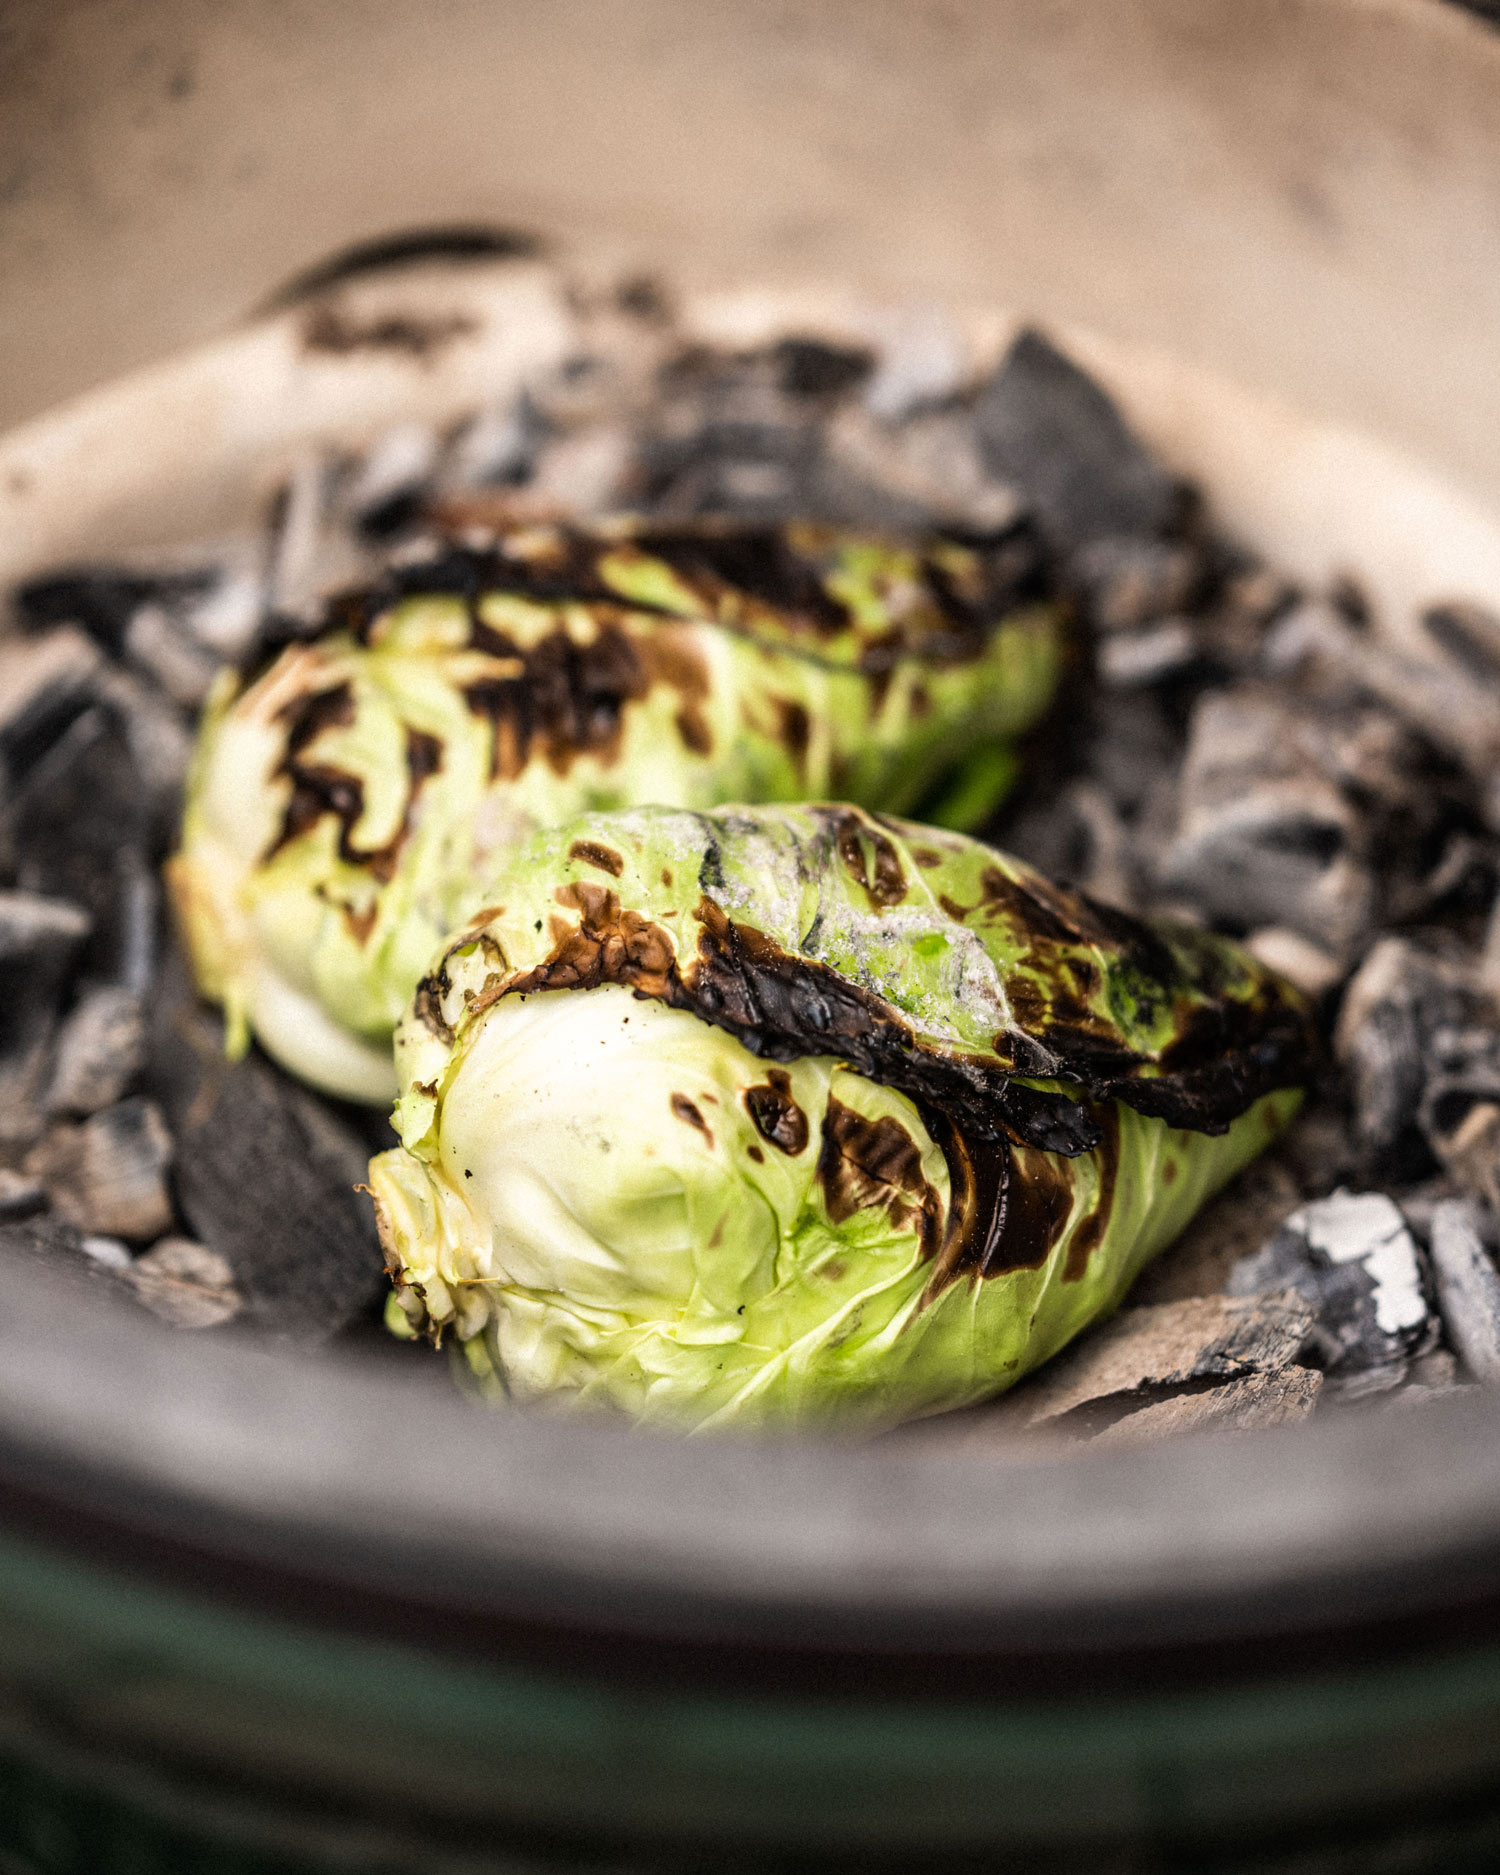 cook the cabbage directly on the charcoal